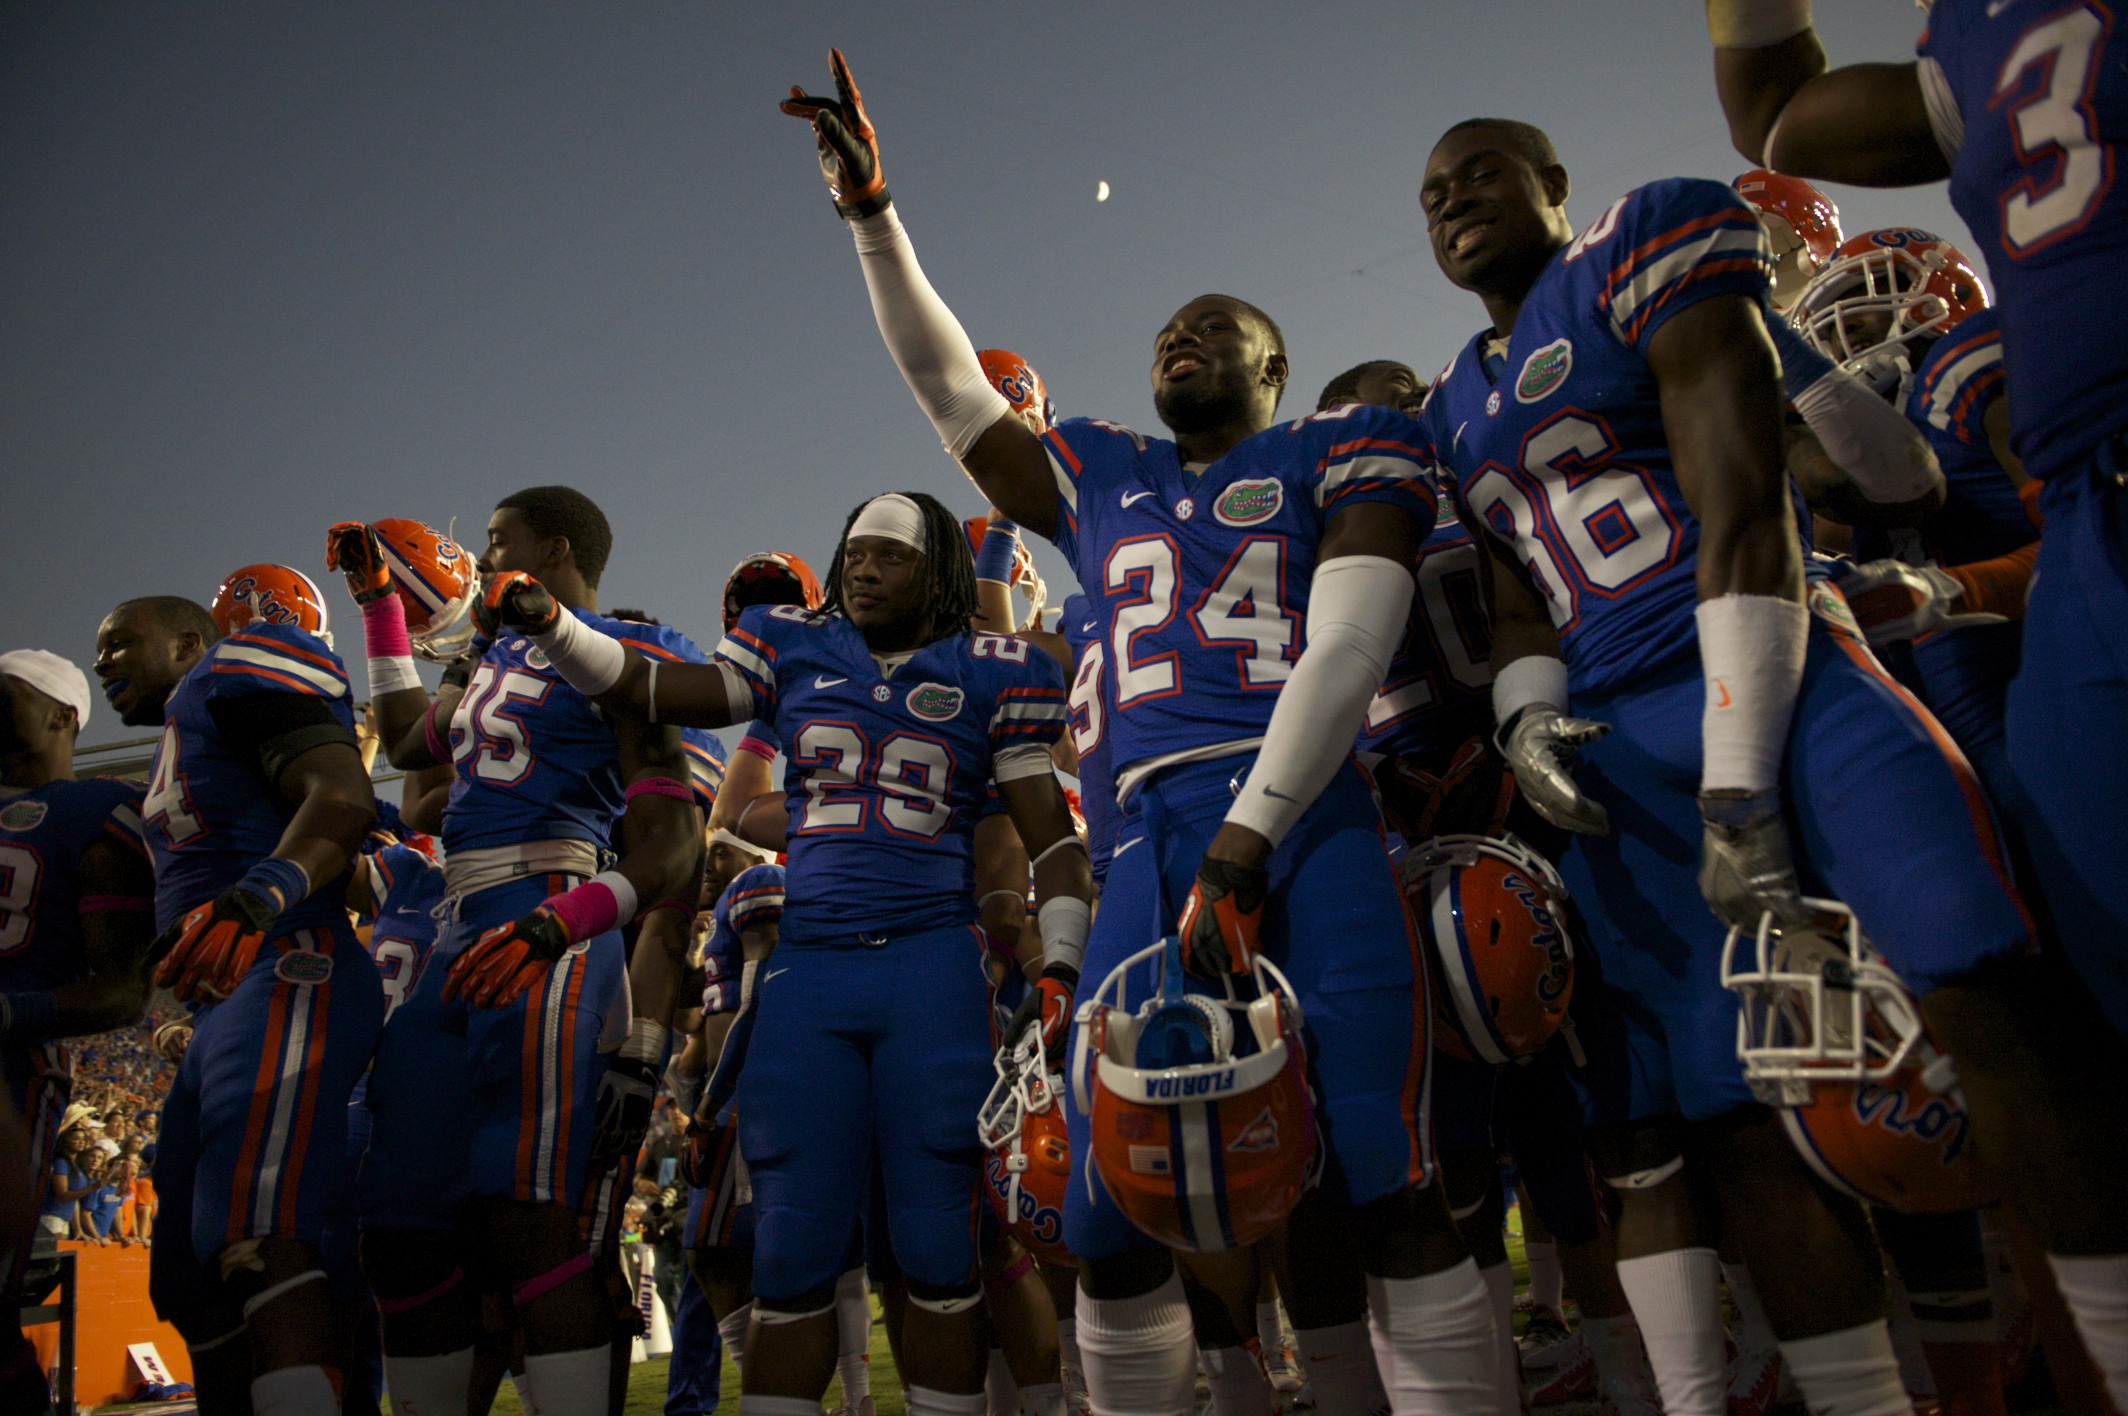 The Florida Gators are now 7-0 for the season and travel to Jacksonville next weekend to take on the Georgia Bulldogs.